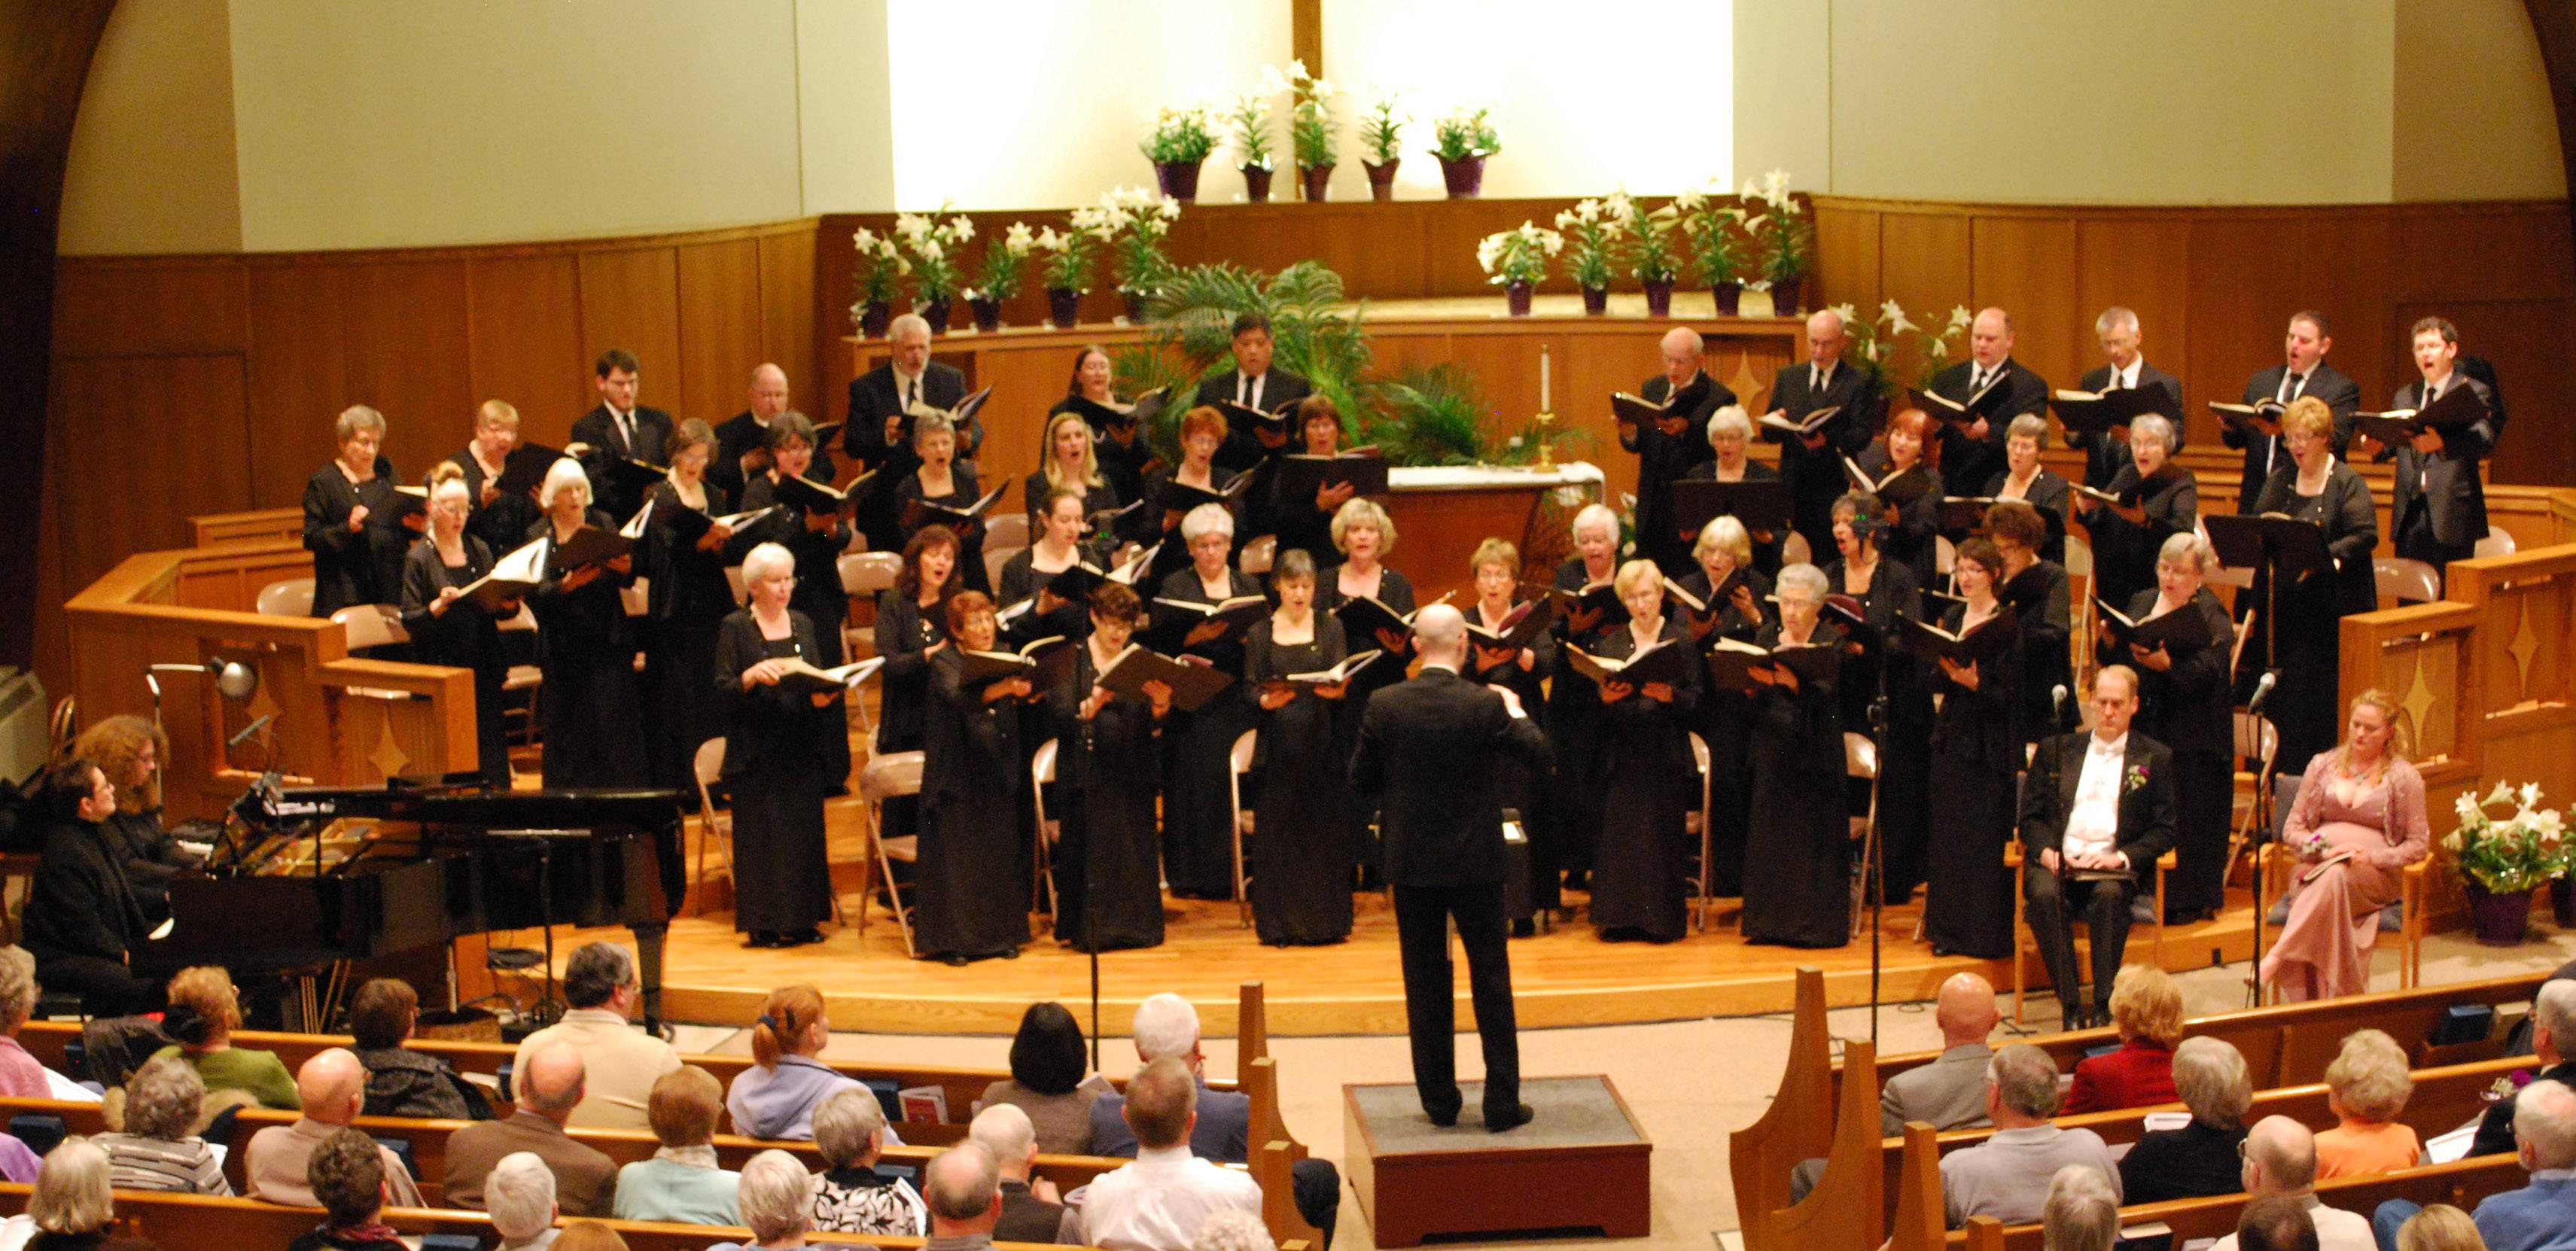 The Northwest Choral Society presented a 2013 concert at Southminster Church in Arlington Heights.Tom Perles